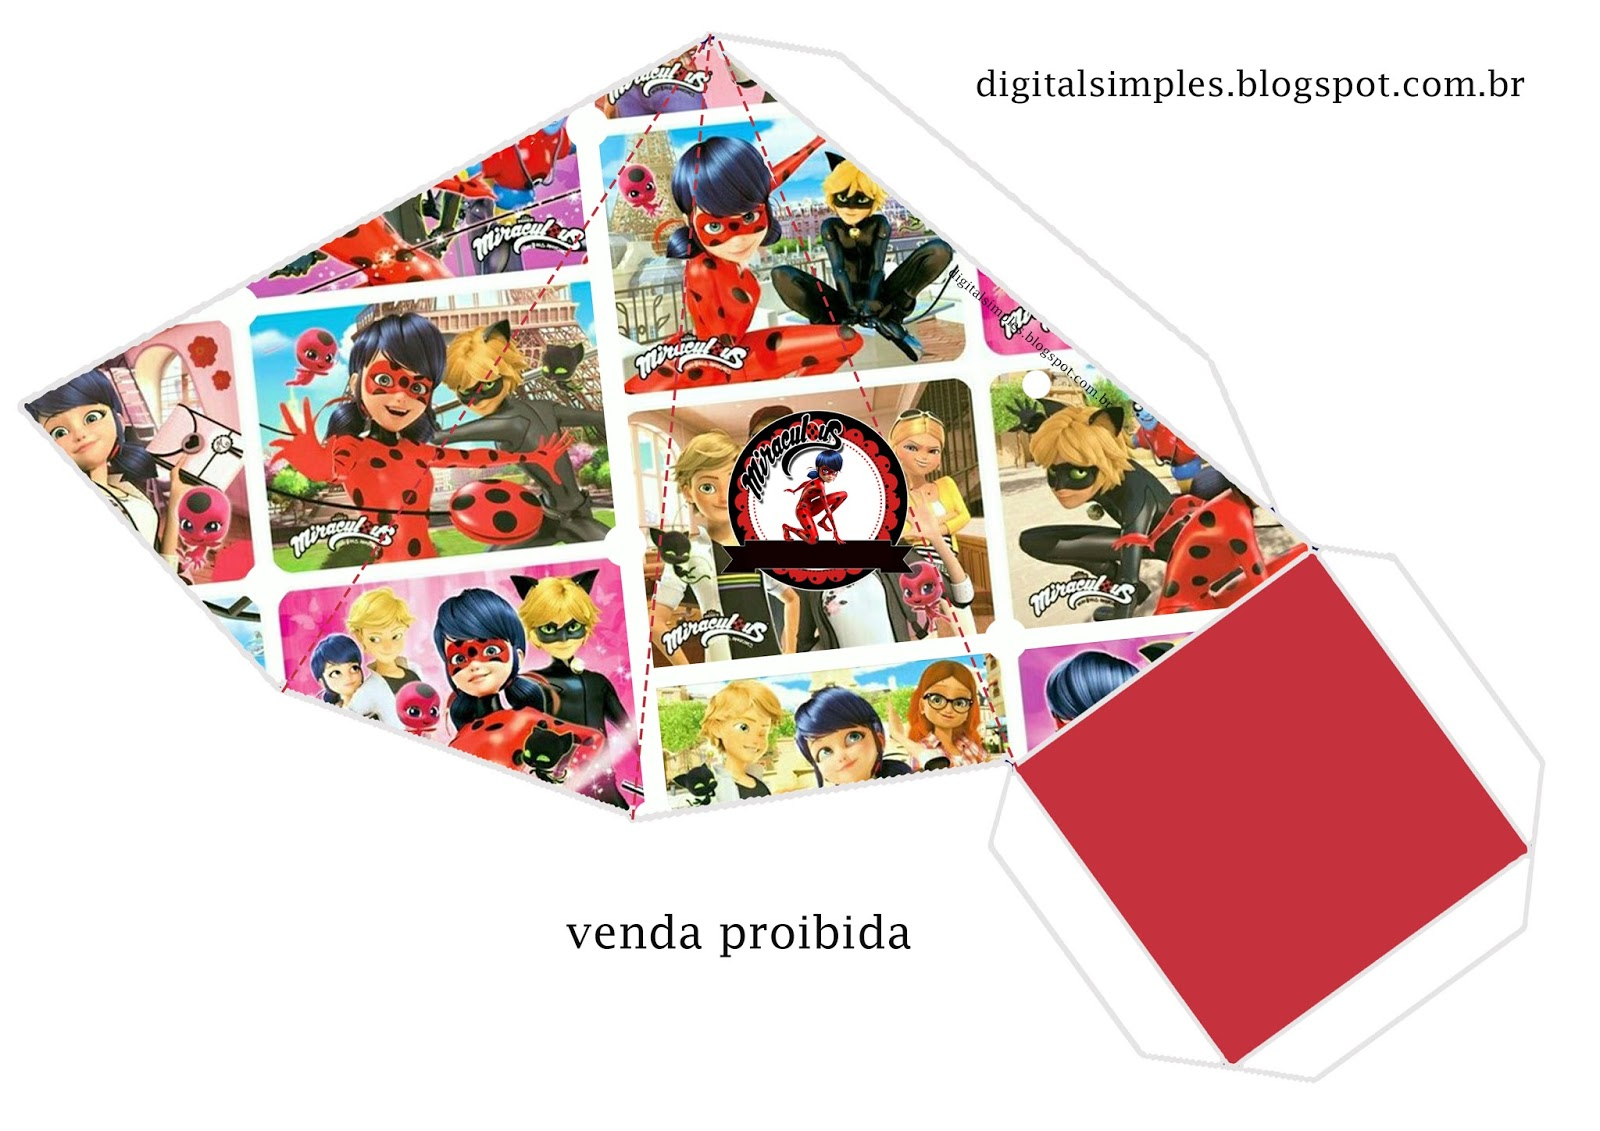 Miraculous Ladybug Free Printable Boxes Oh My Fiesta